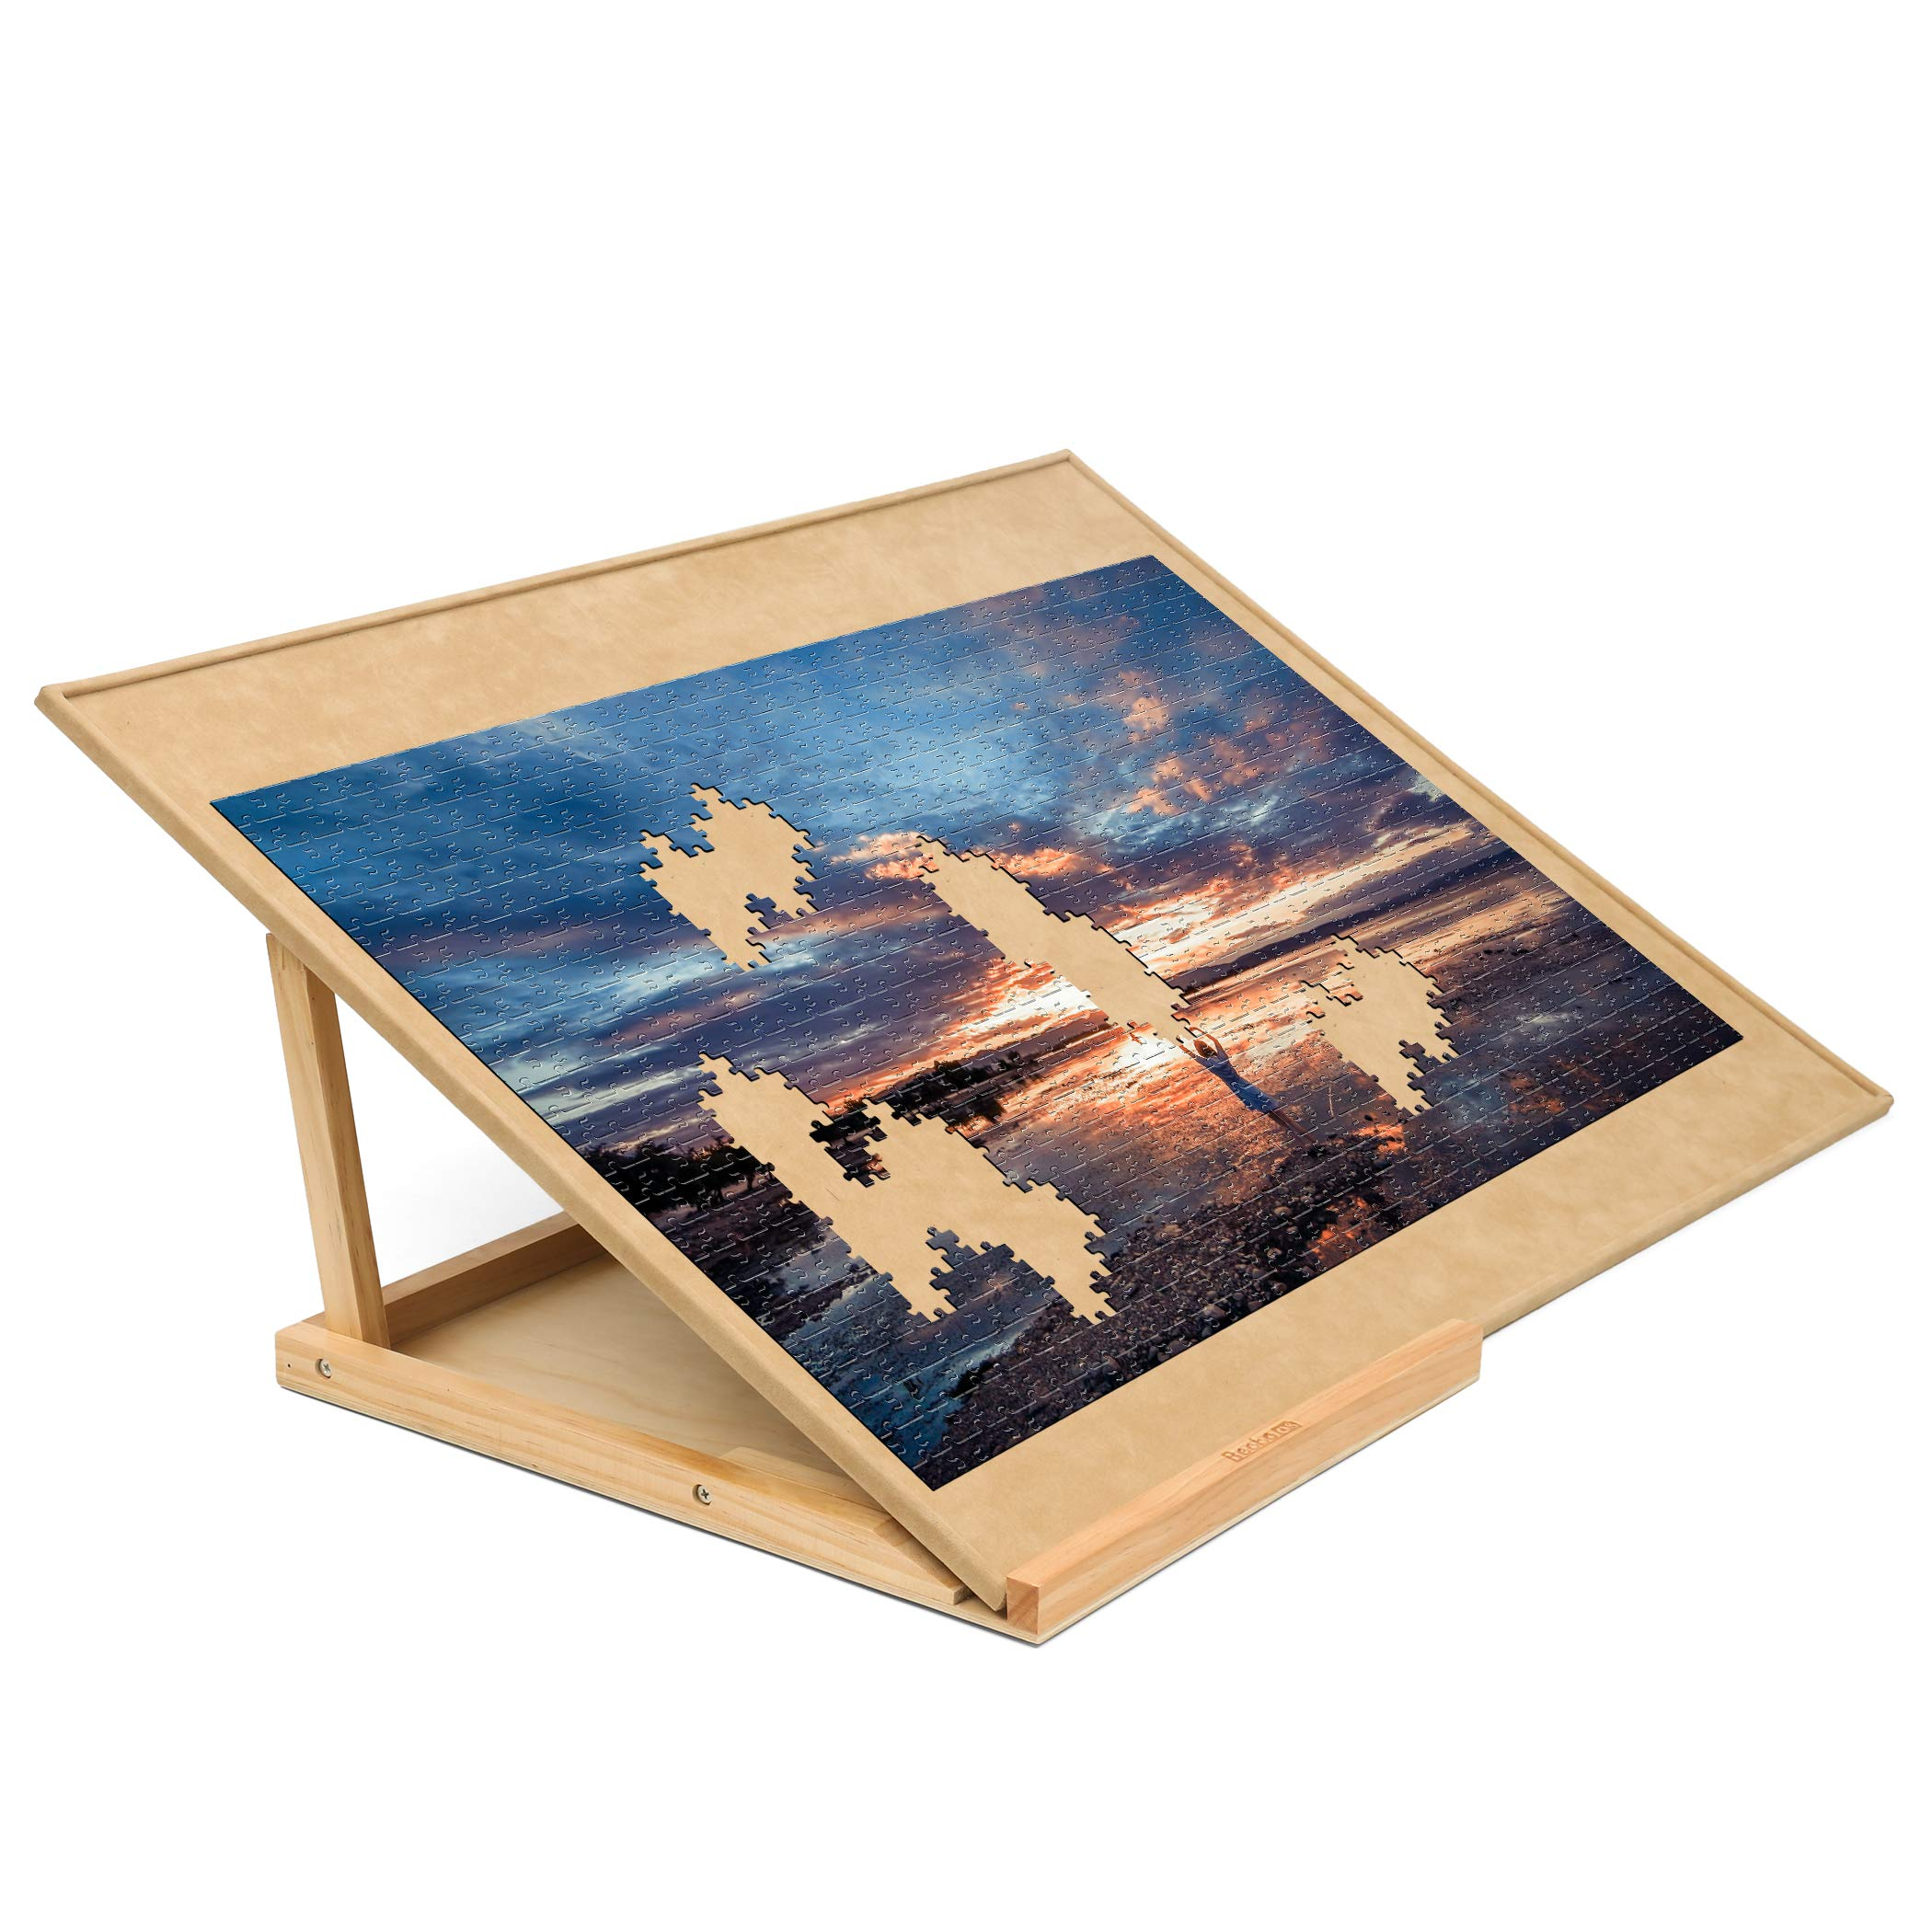 Becko Wooden Puzzle Board with Easel Adjustable Puzzle Board & Bracket Set Jigsaw Puzzle Plateau for Adults and Kids for Puzzle Up to 1000 Pieces, Non-Slip Surface